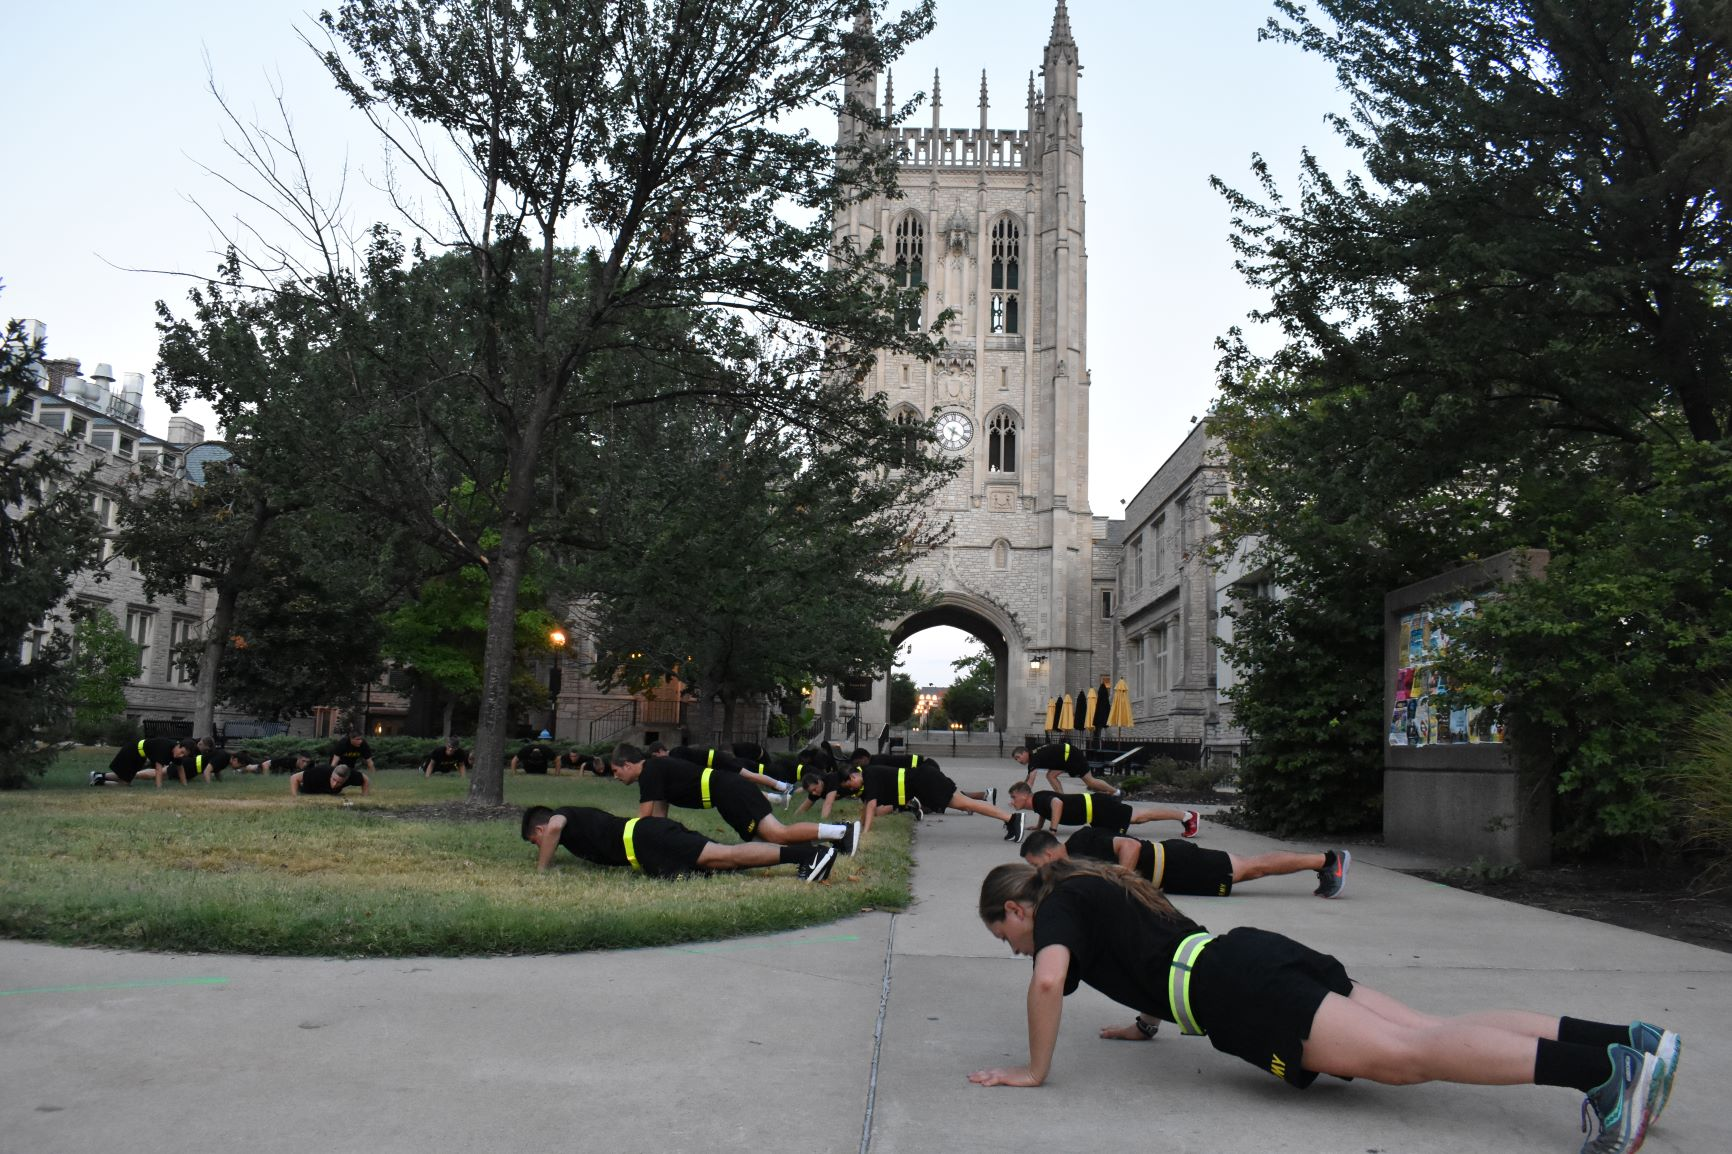 PT by Memorial Union